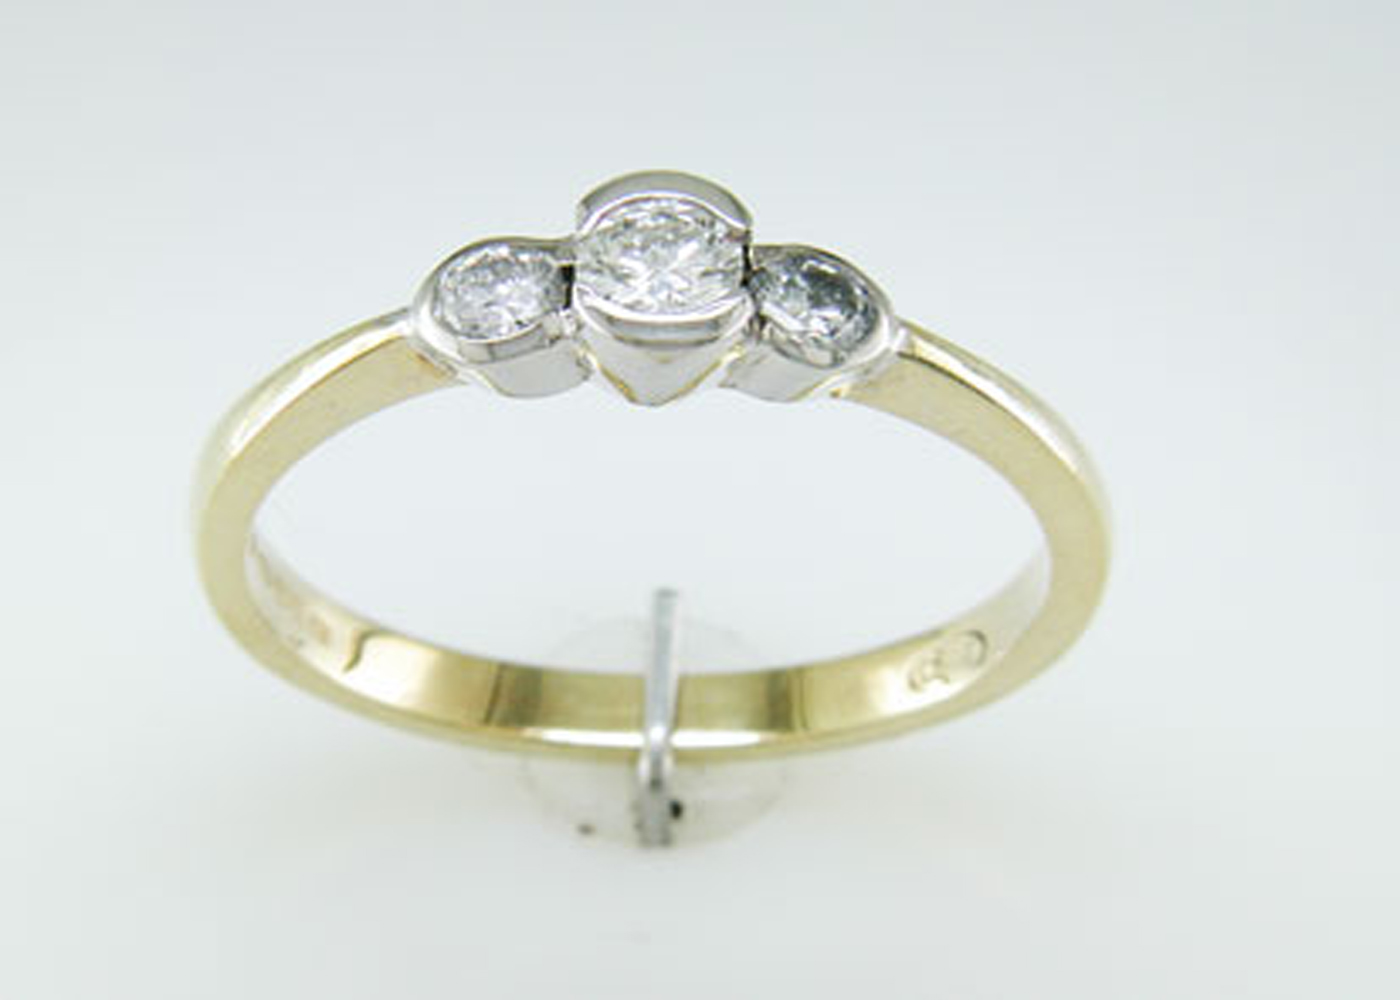 Lot 10 - 18ct Three Stone Rub Over Set Diamond Ring 0.65 Carats